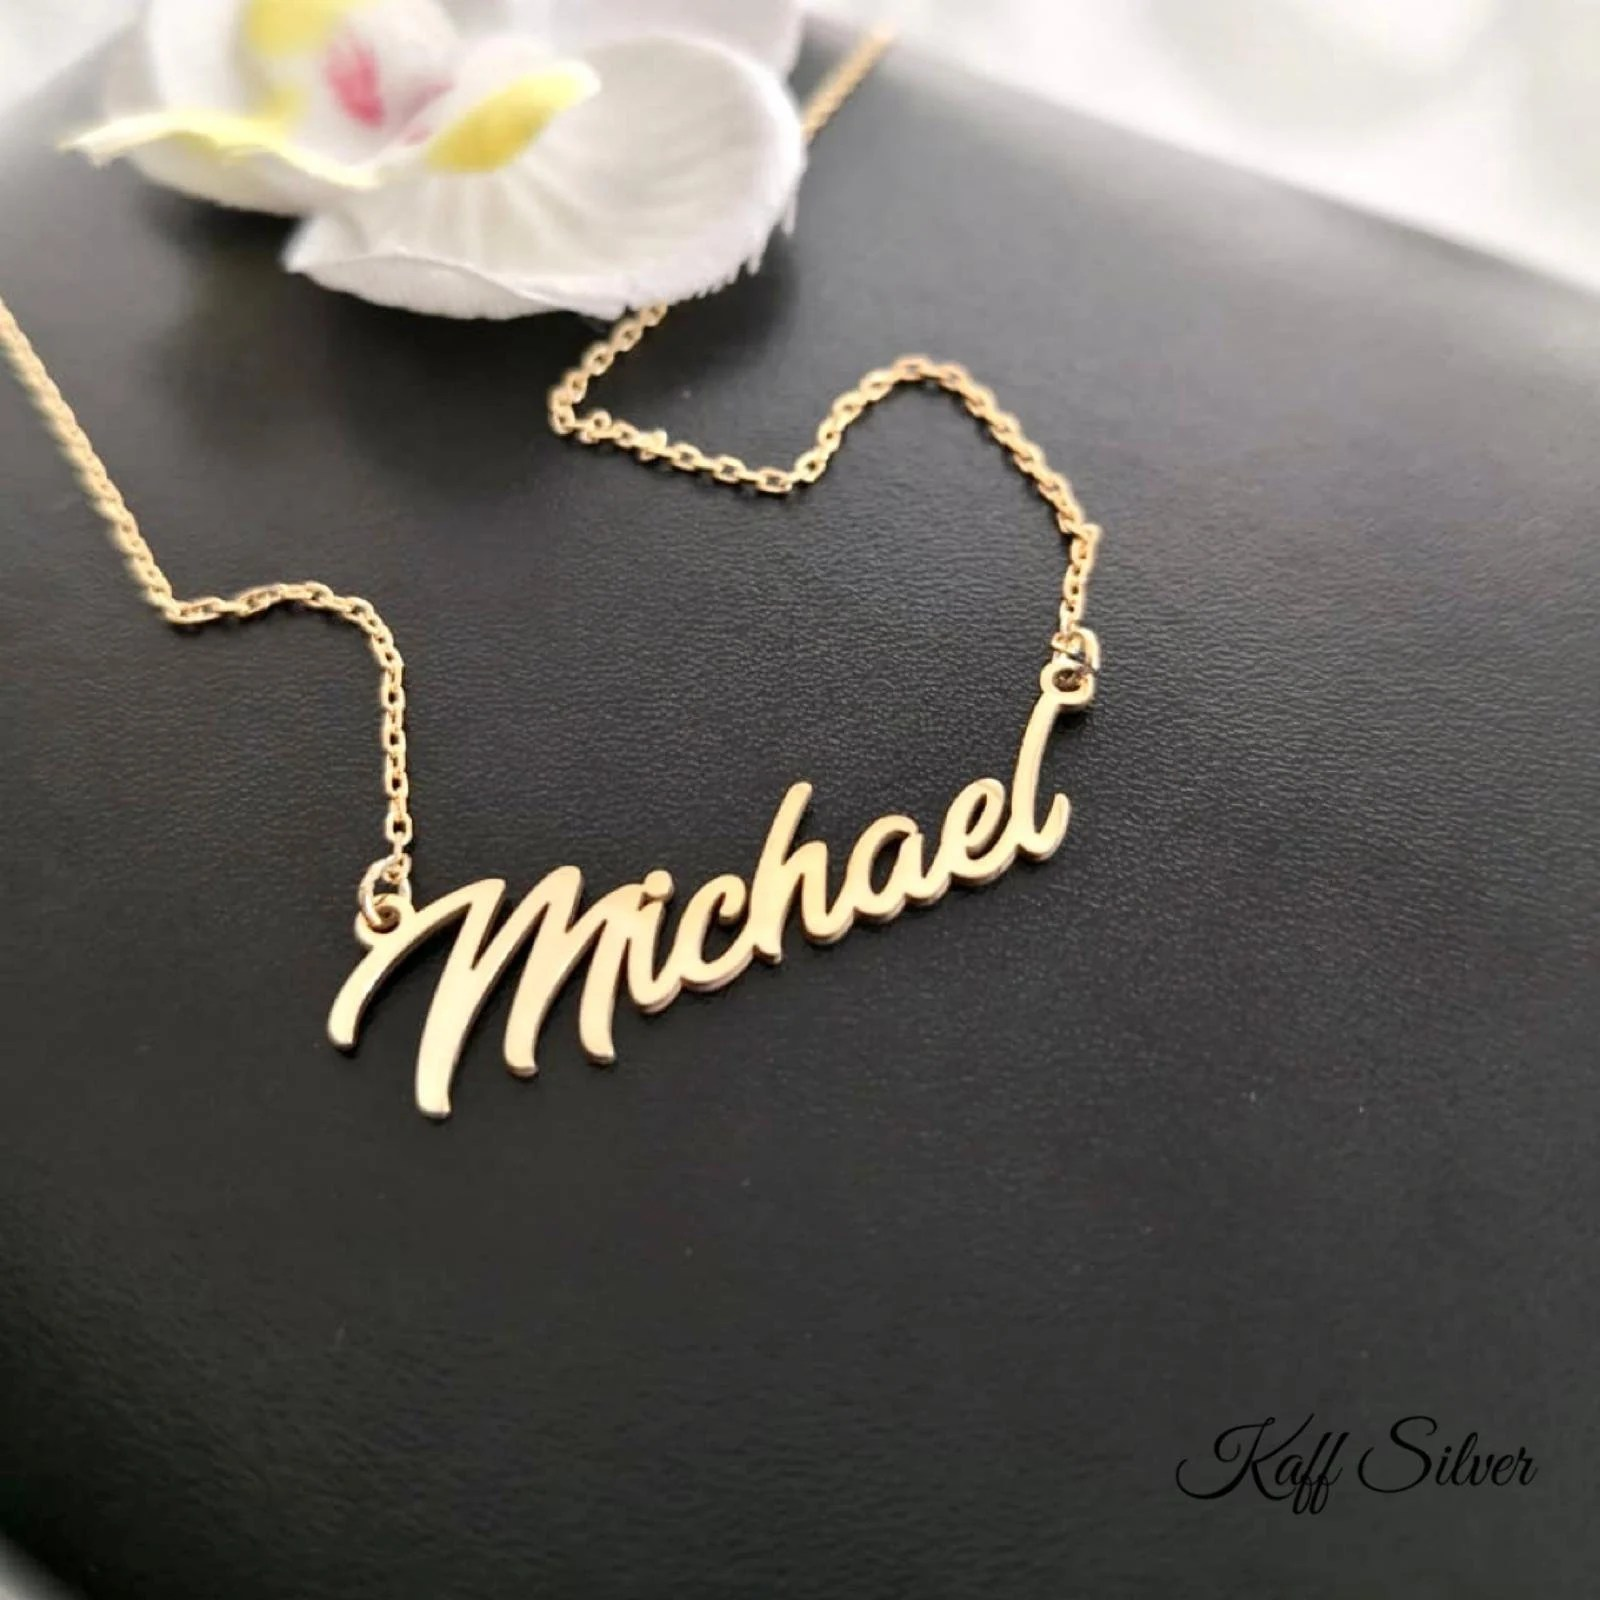 Silver Name Necklace Personalized Name Necklace Custom Name image 7